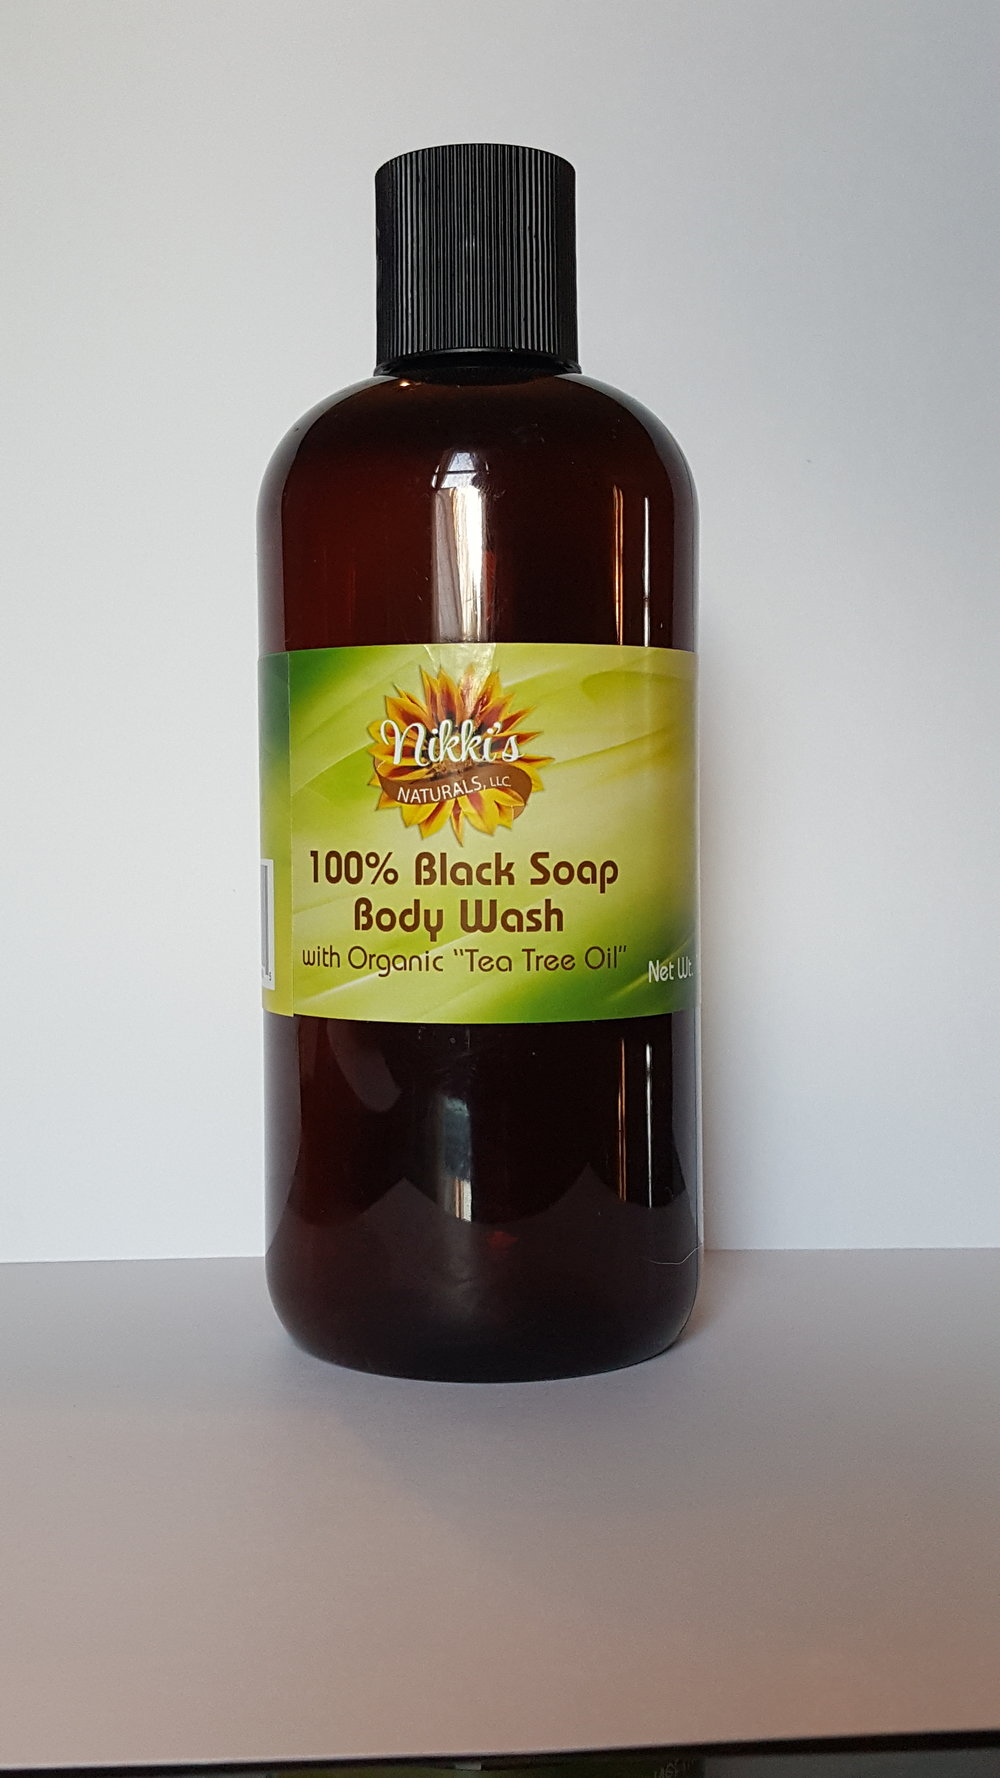 Liquid Black Soap Face and Body Wash with organic Tea Tree oil  16oz $18.00  Ingredients:  Cocoa Pod Ashes, Plantain Skin Ashes, Palm Oil and Organic Tee Tree Oil